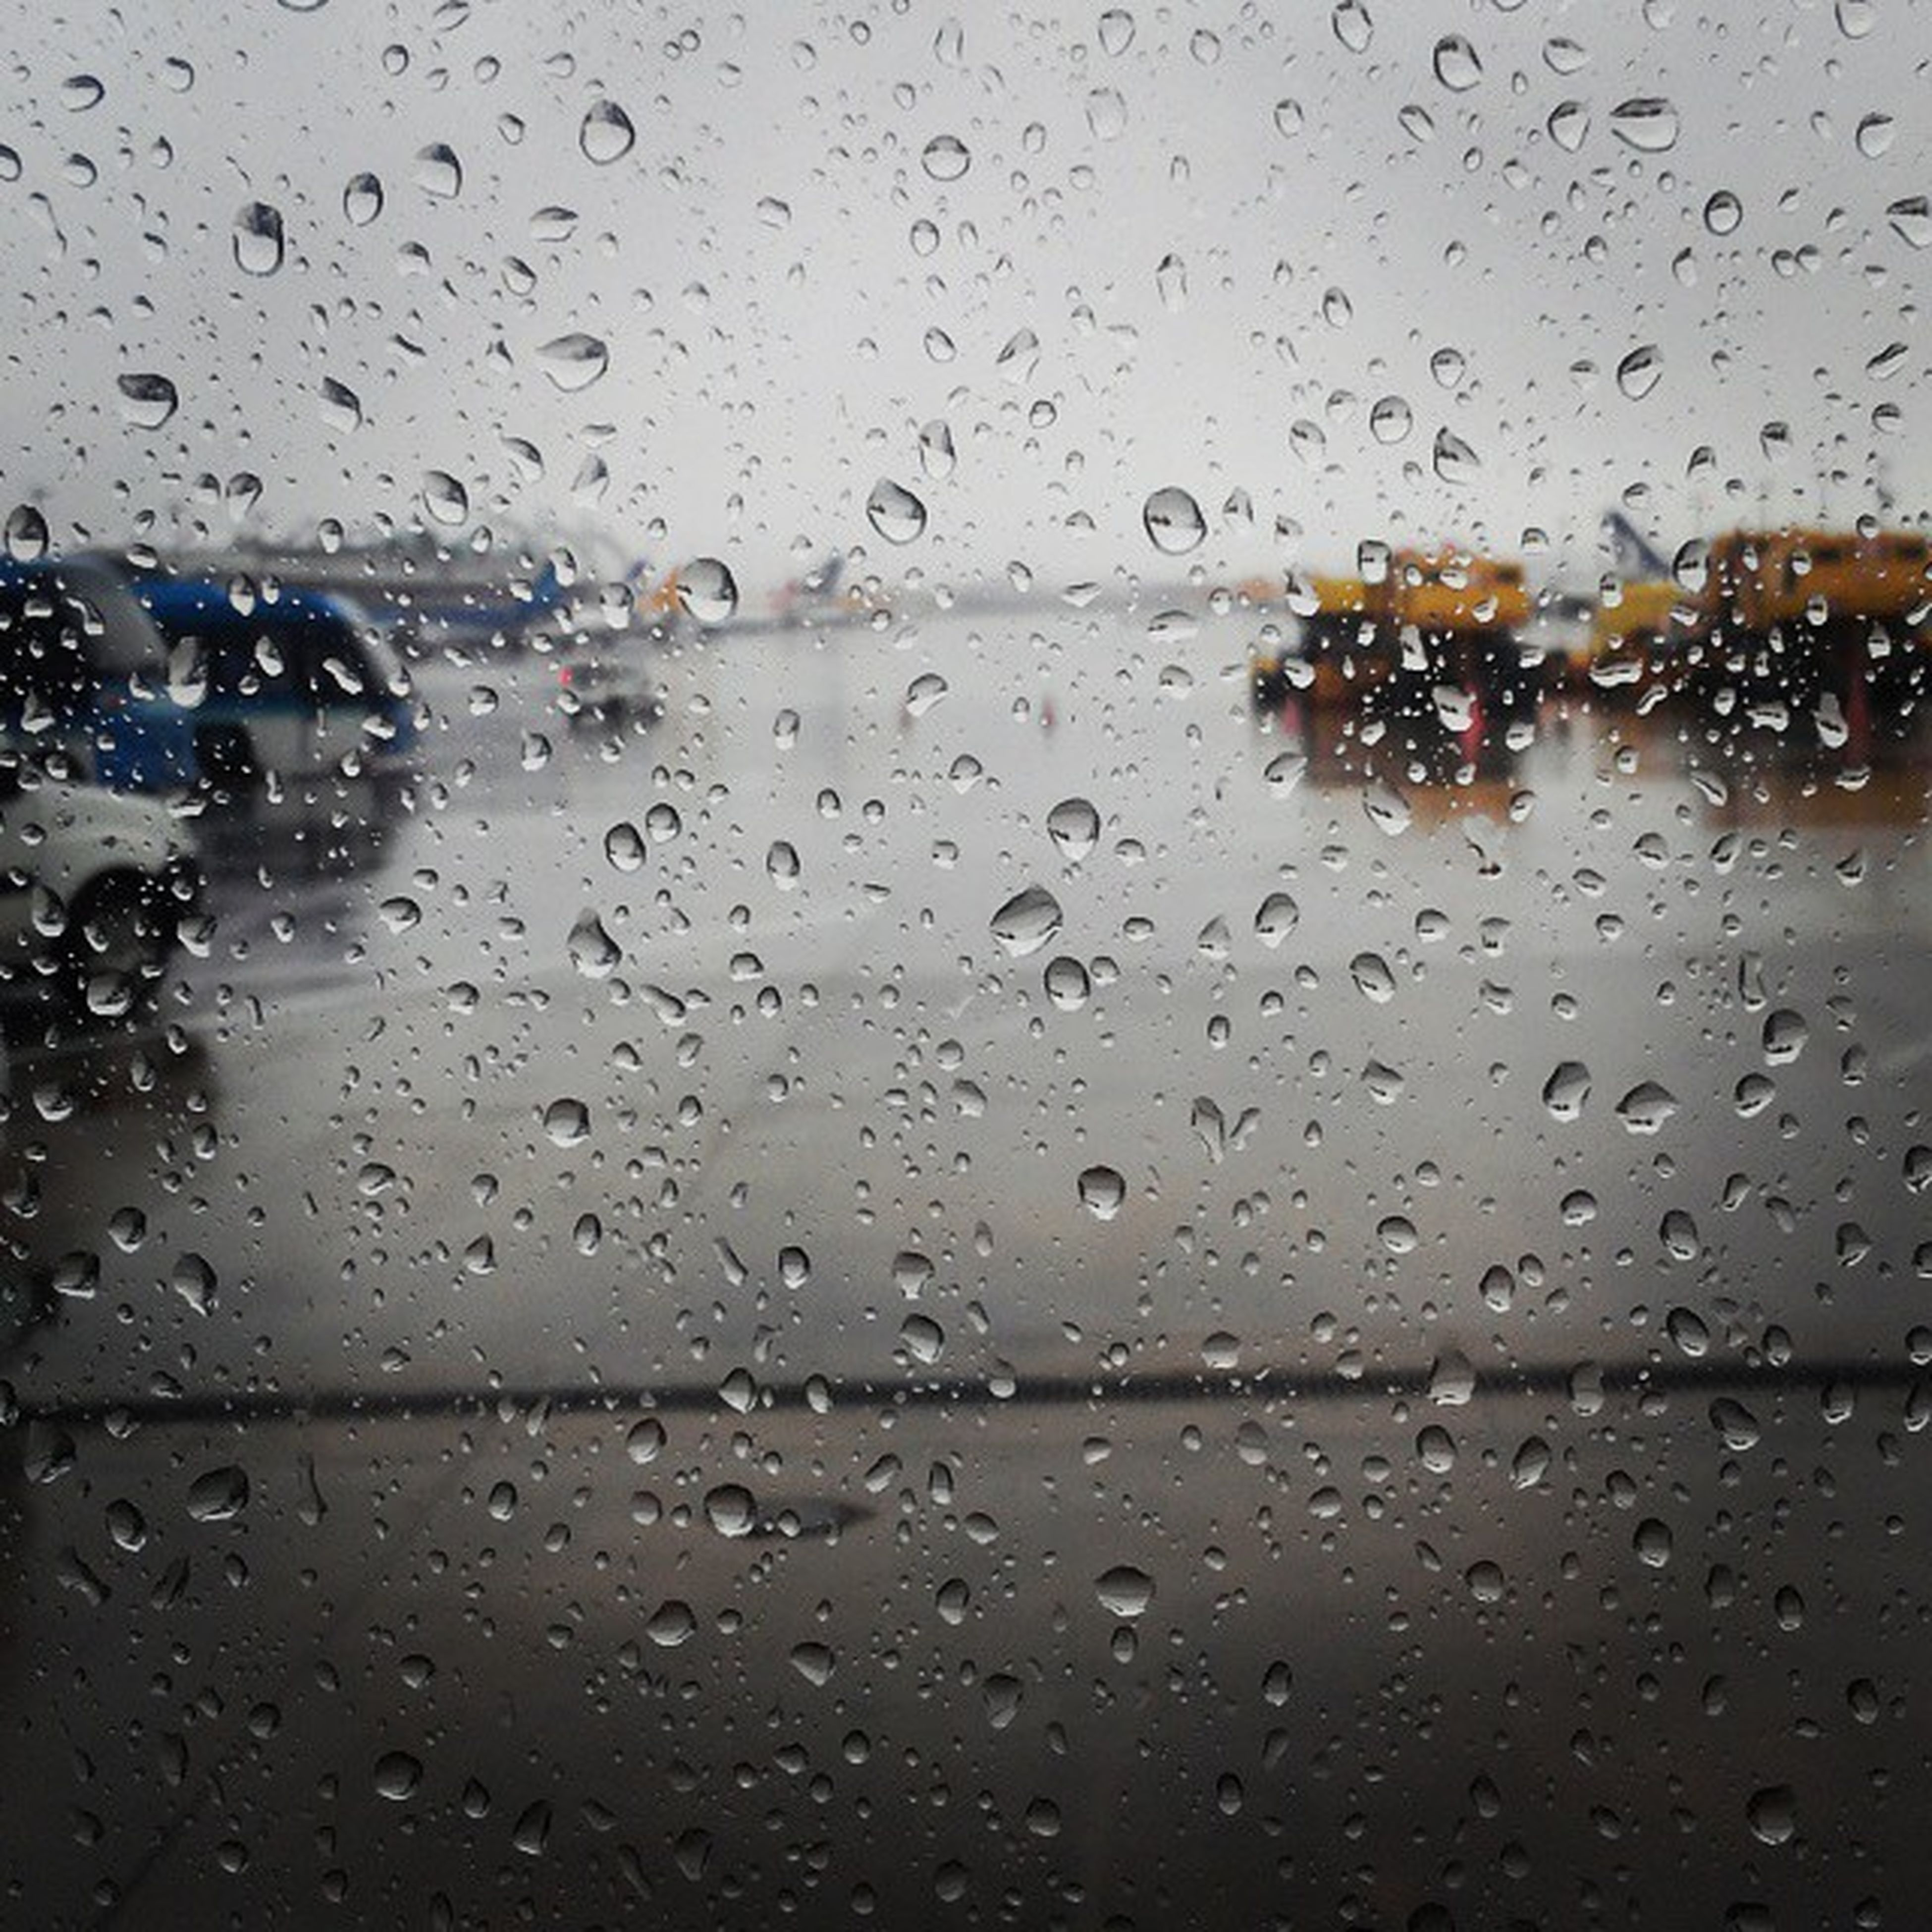 drop, wet, window, transparent, rain, glass - material, water, indoors, weather, season, raindrop, glass, car, transportation, full frame, sky, focus on foreground, backgrounds, close-up, monsoon